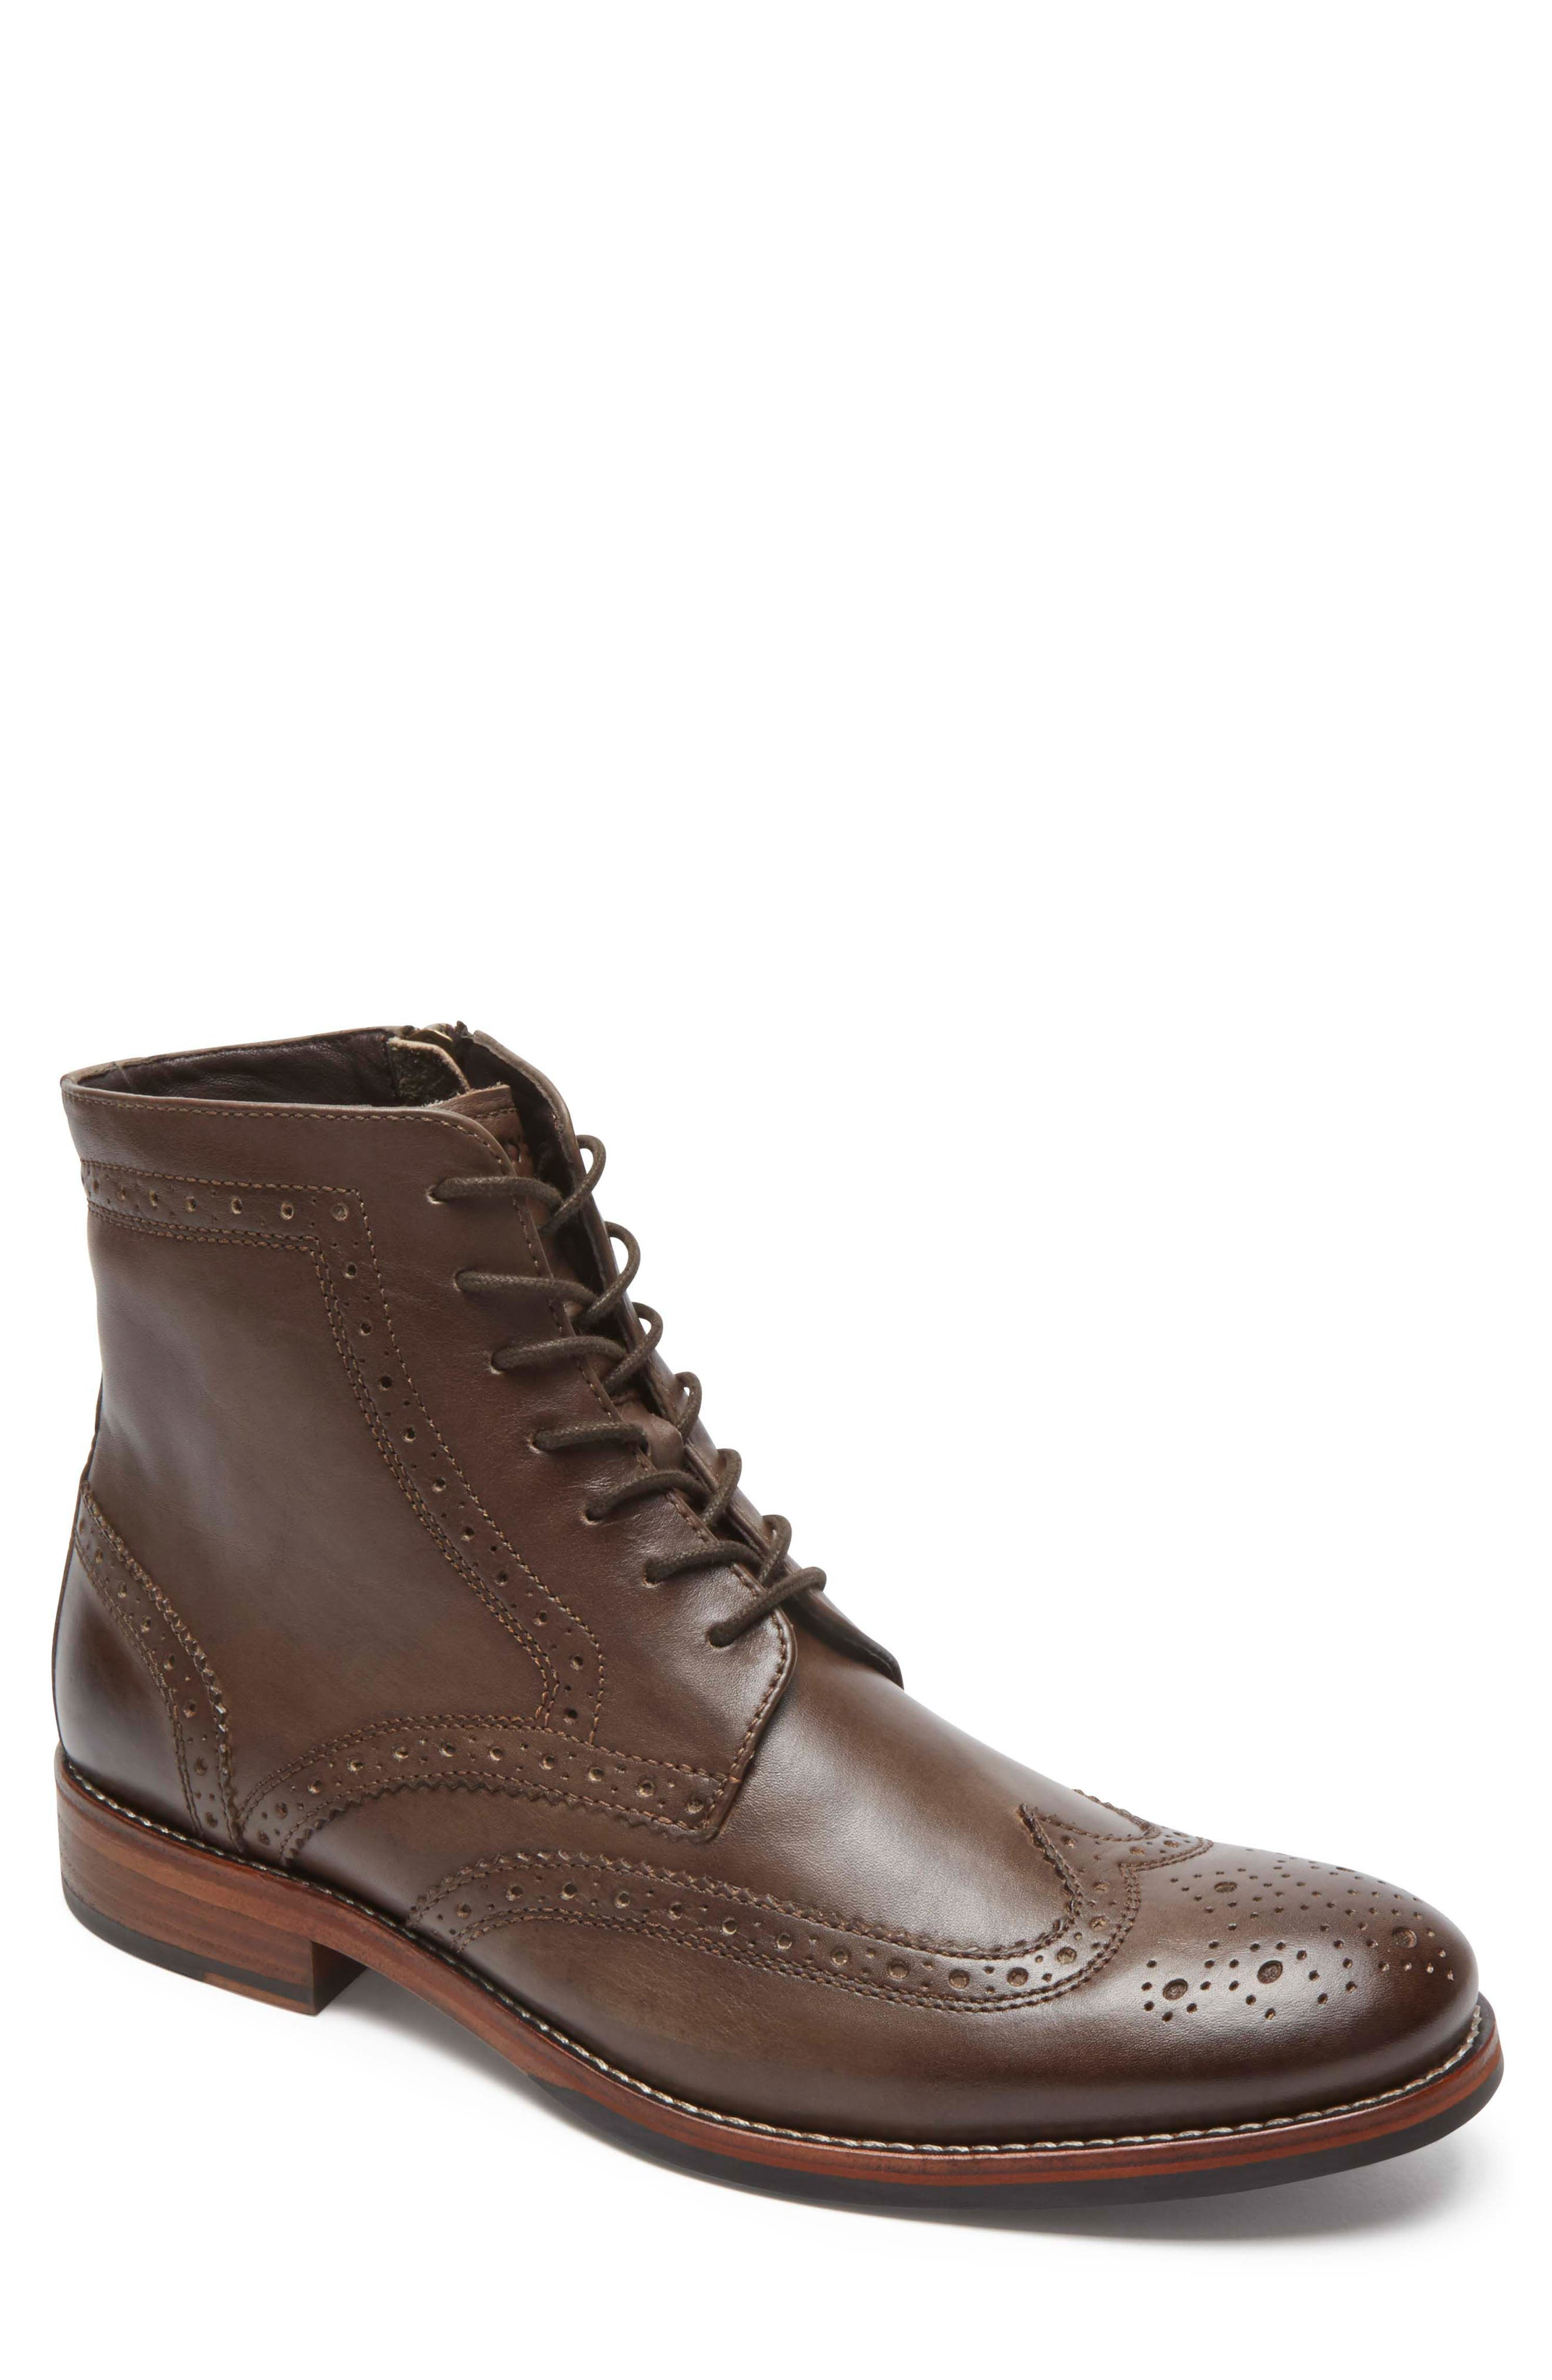 Wyat Wingtip Boot,                         Main,                         color, Coffee Leather